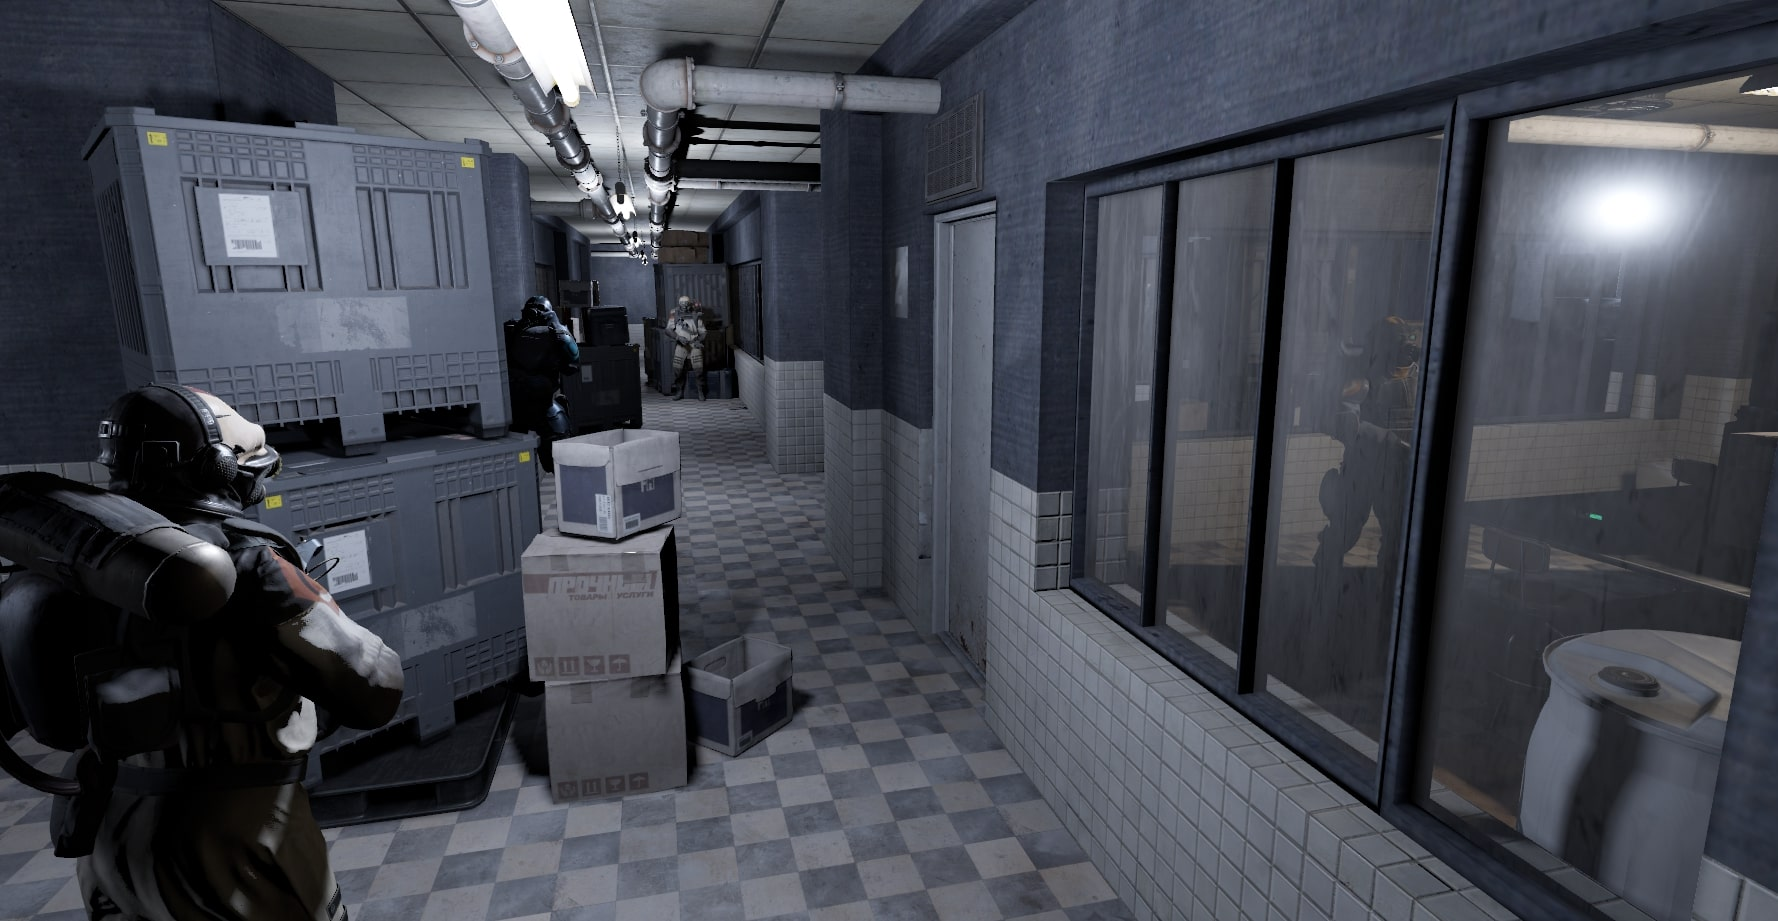 Half-Life: Alyx modders are remaking GoldenEye